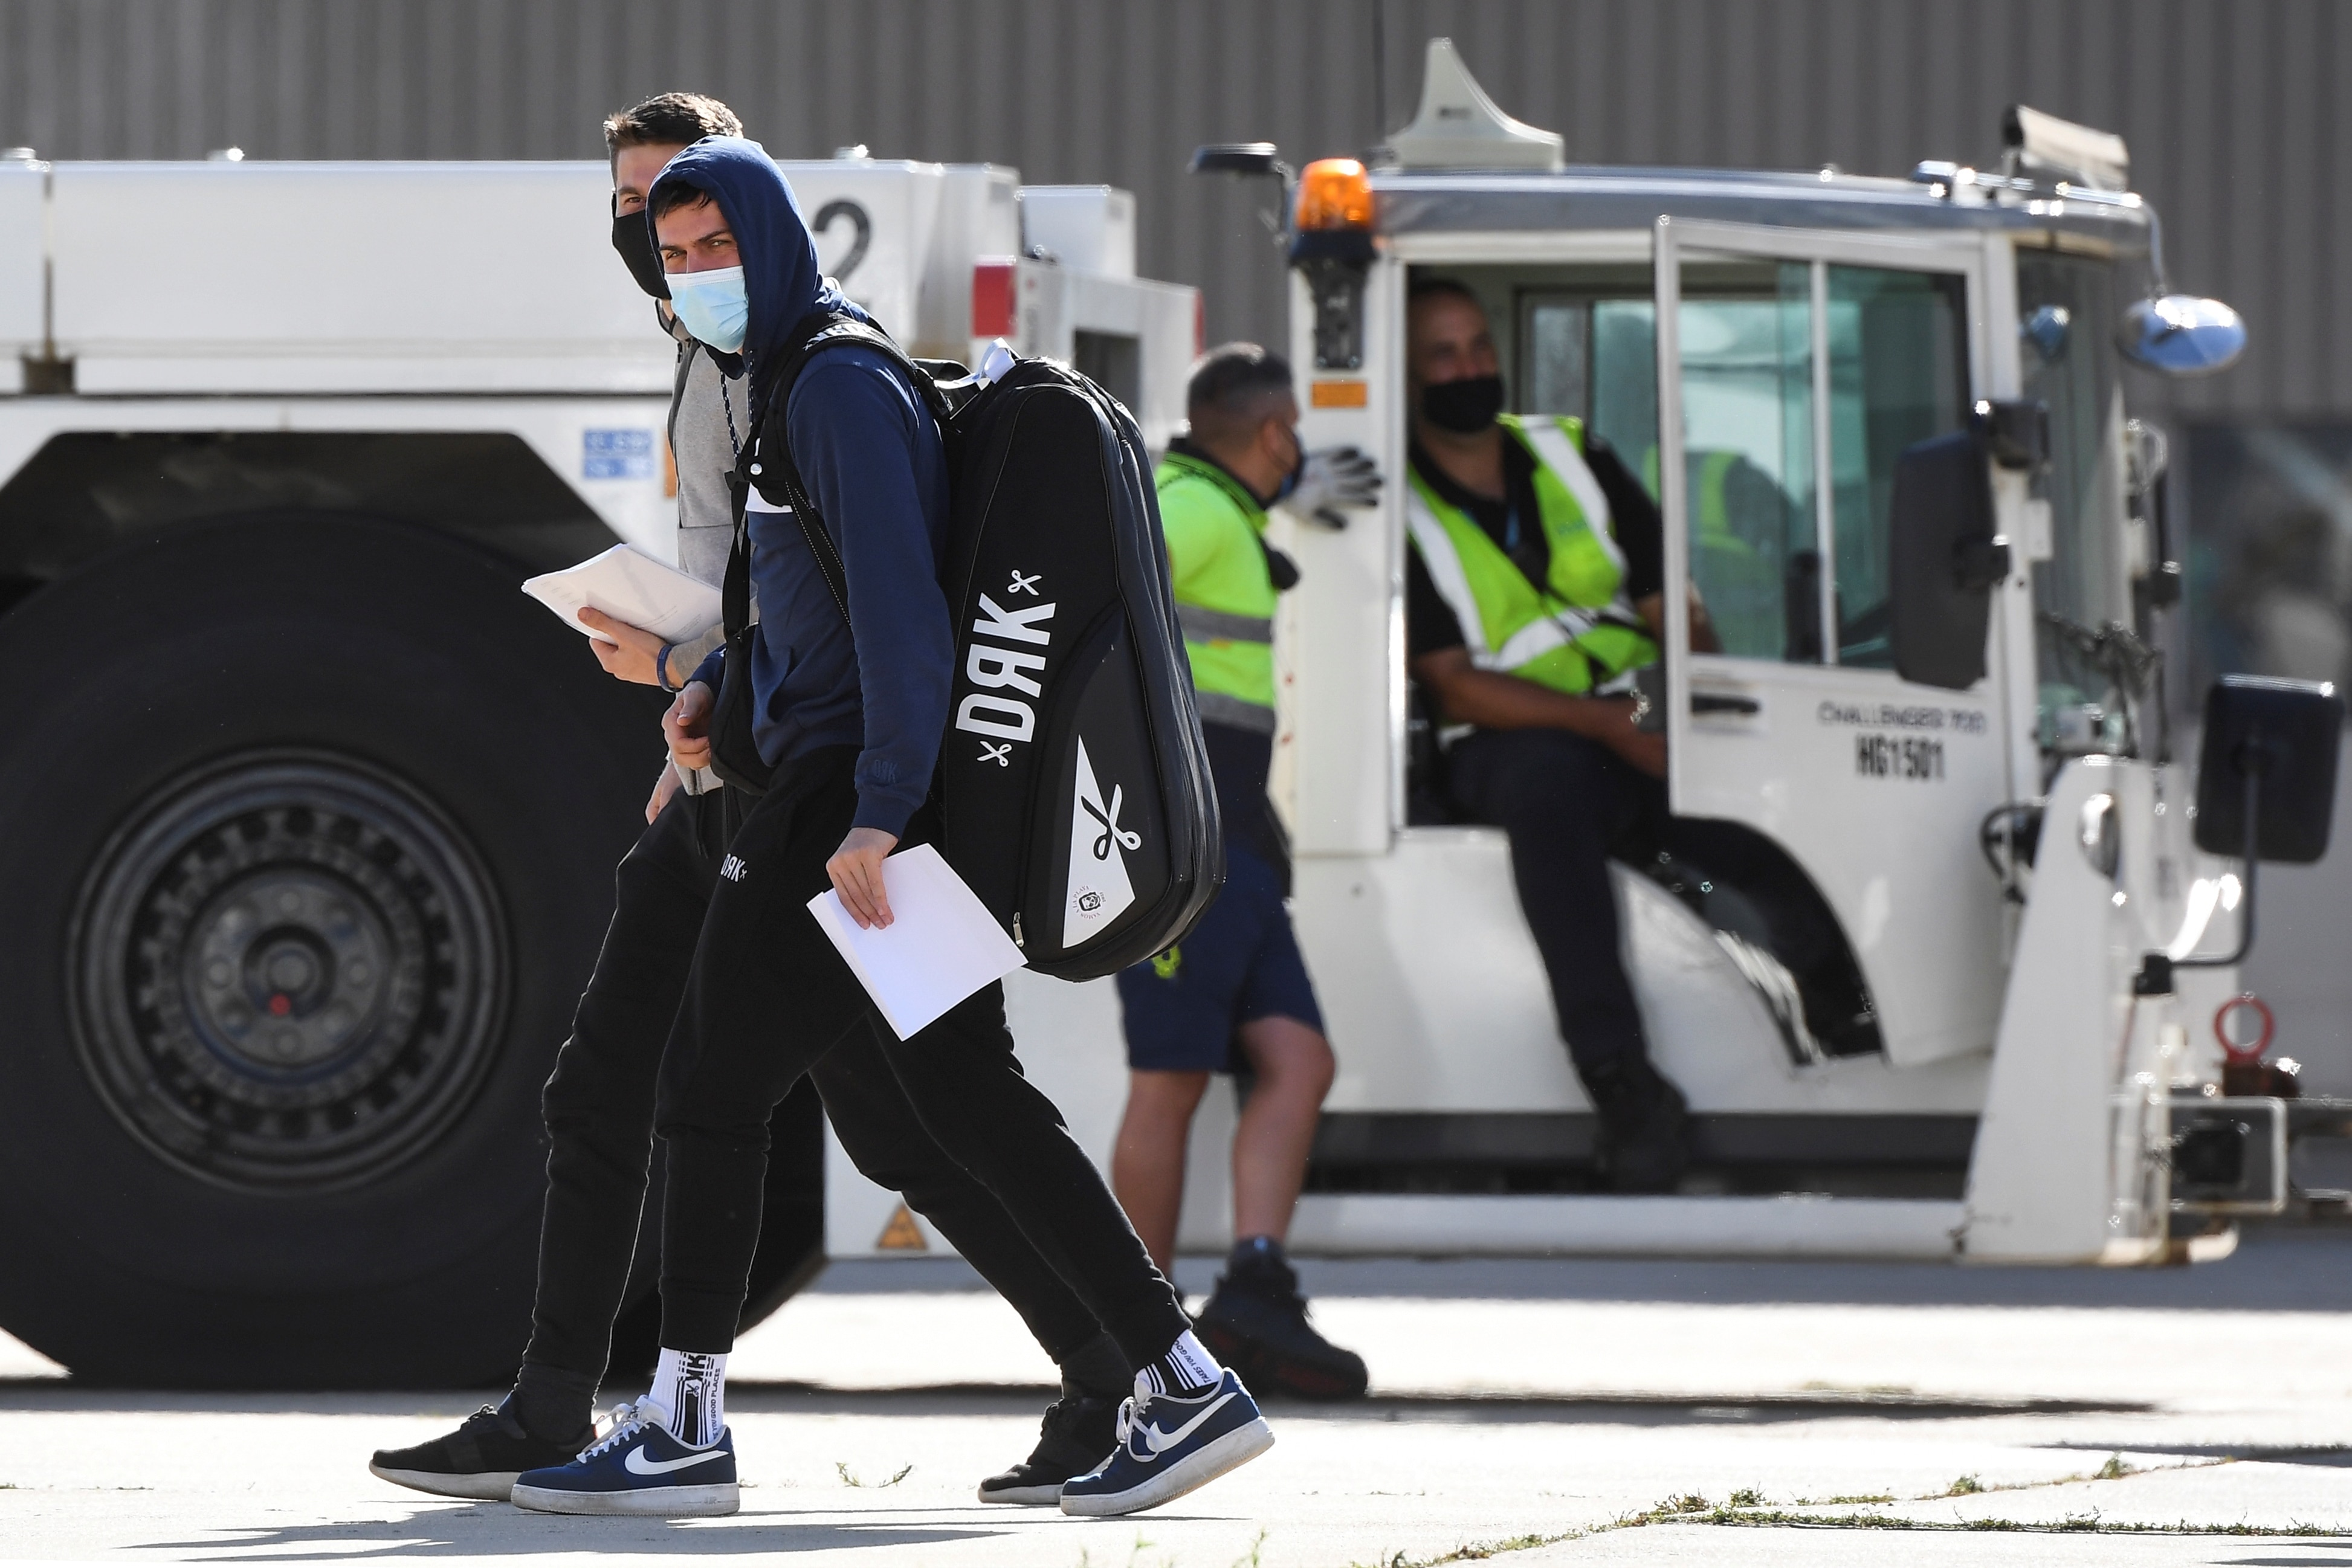 Tennis players and officials disembark from a flight after arriving in Melbourne